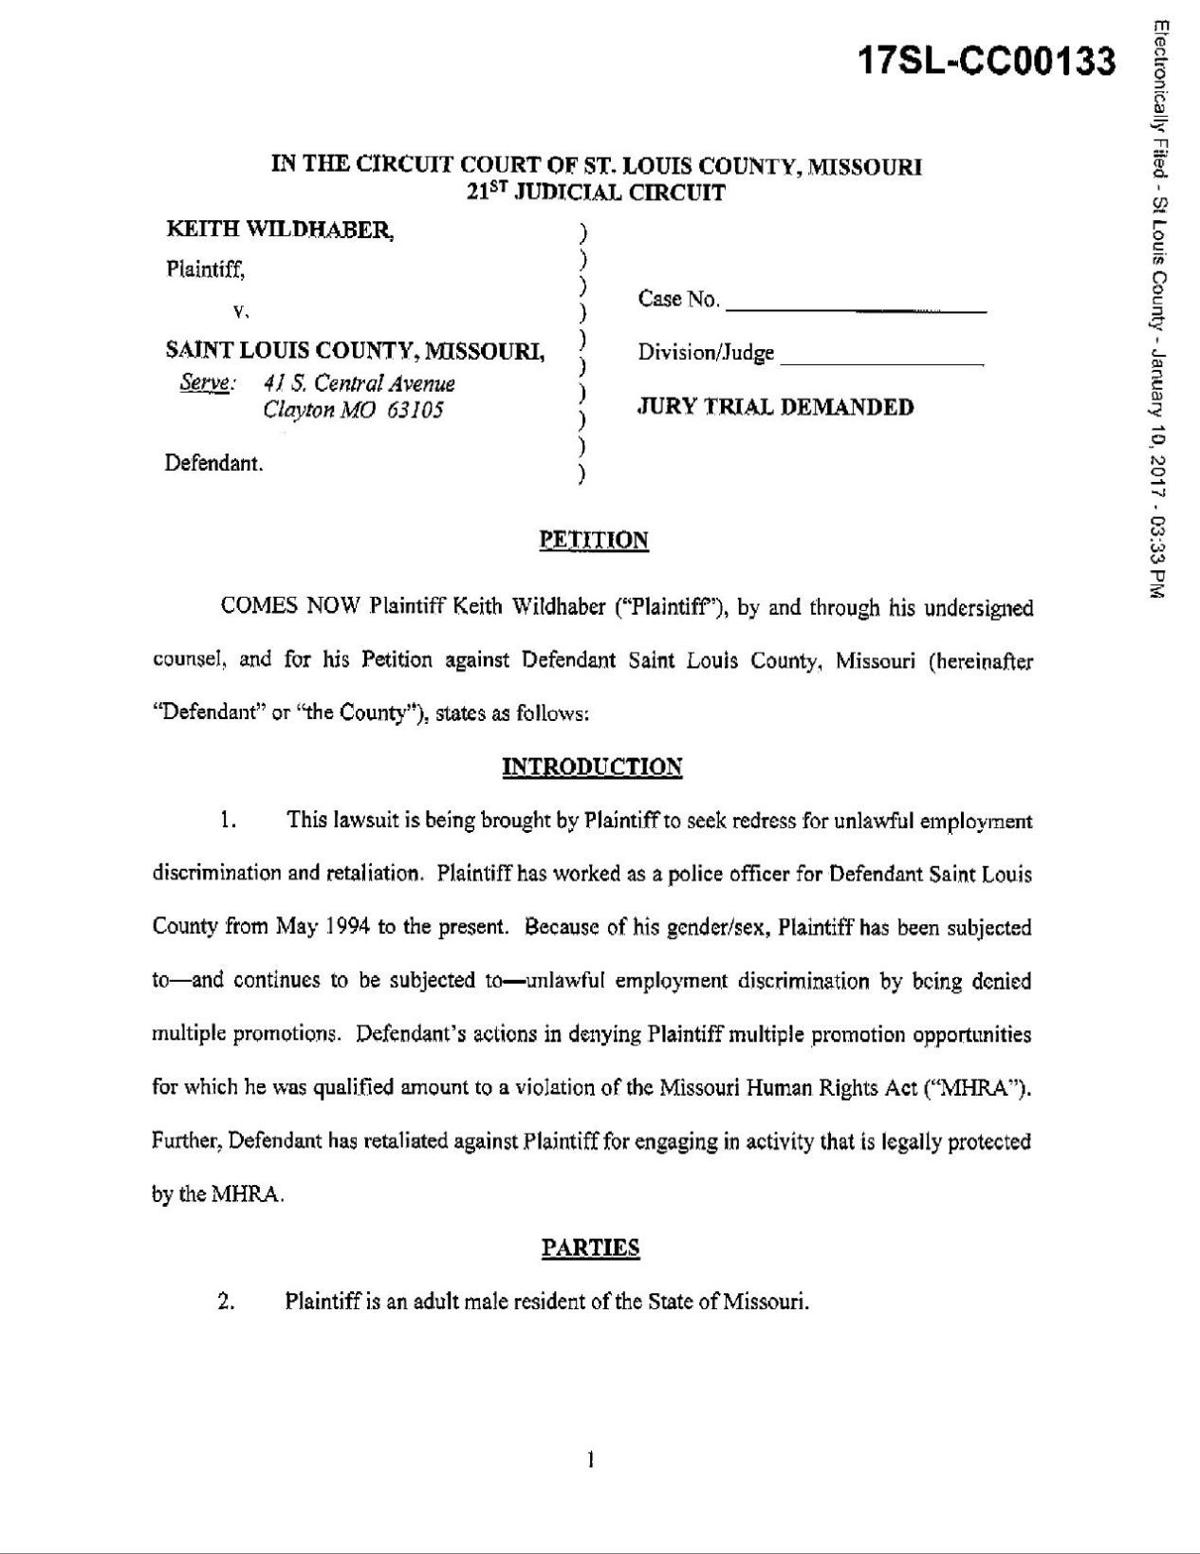 Keith Wildhaber v. St. Louis County